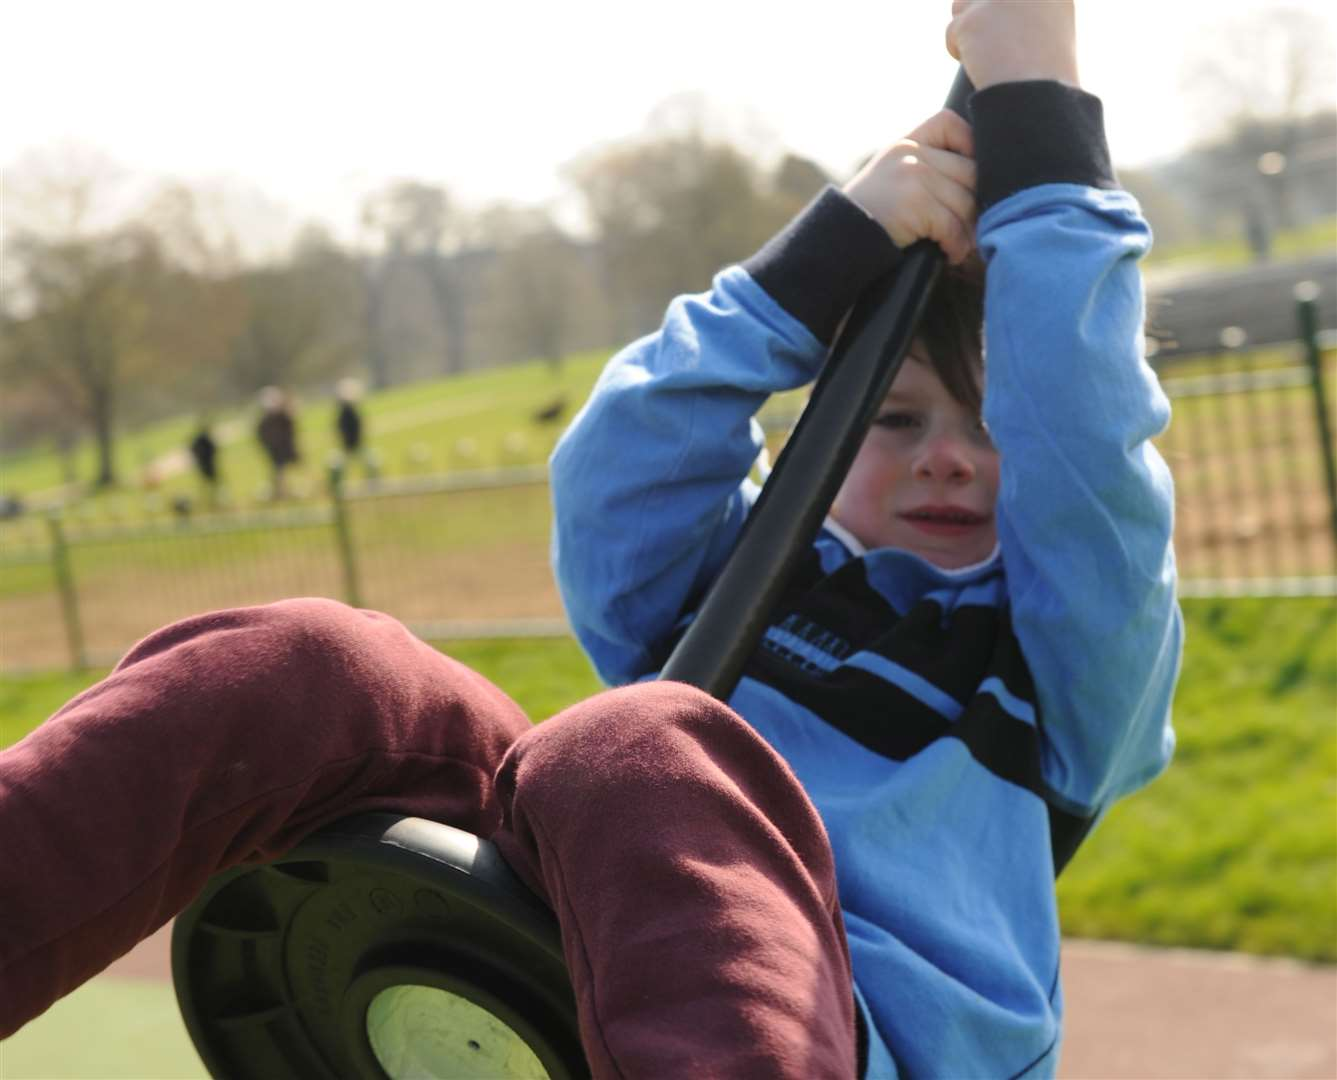 Oscar tries out the new zip wires at the park on Sunday